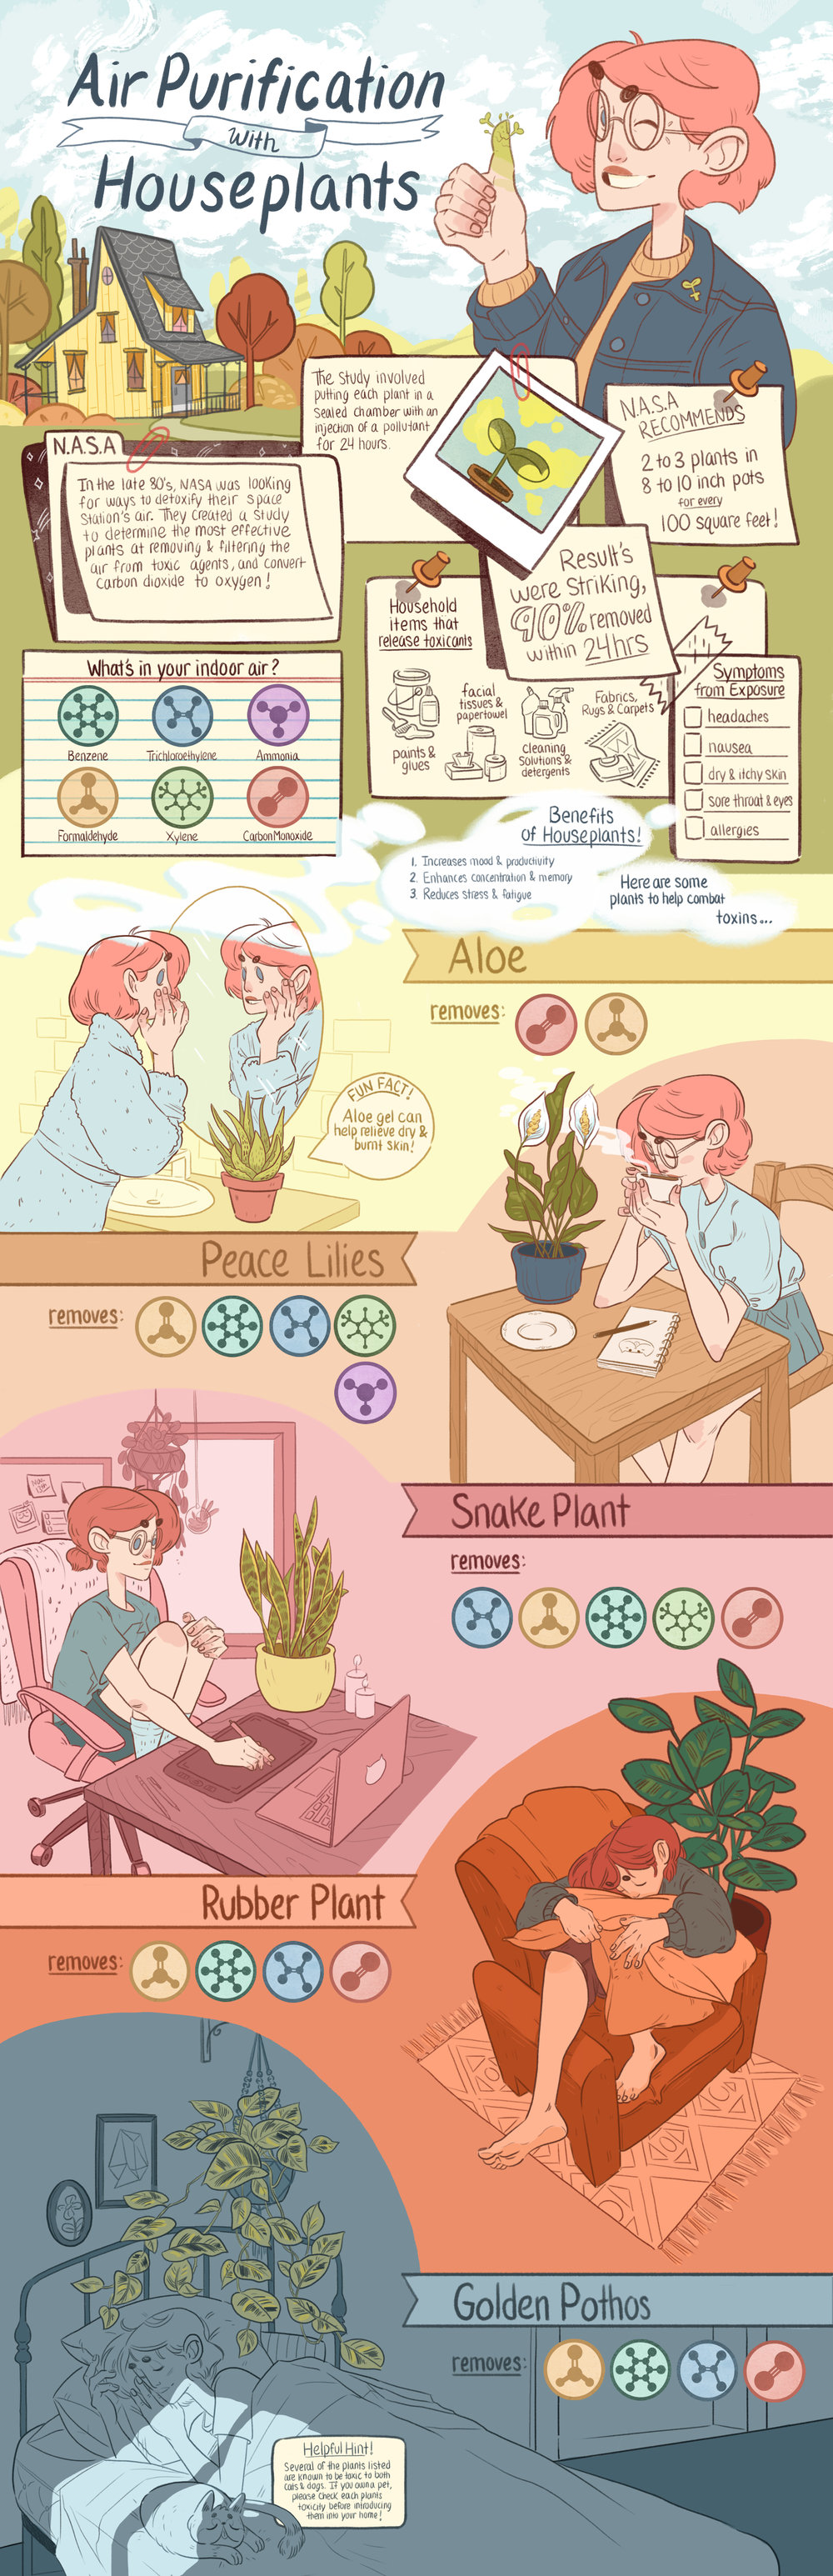 Air purification infographic.jpg